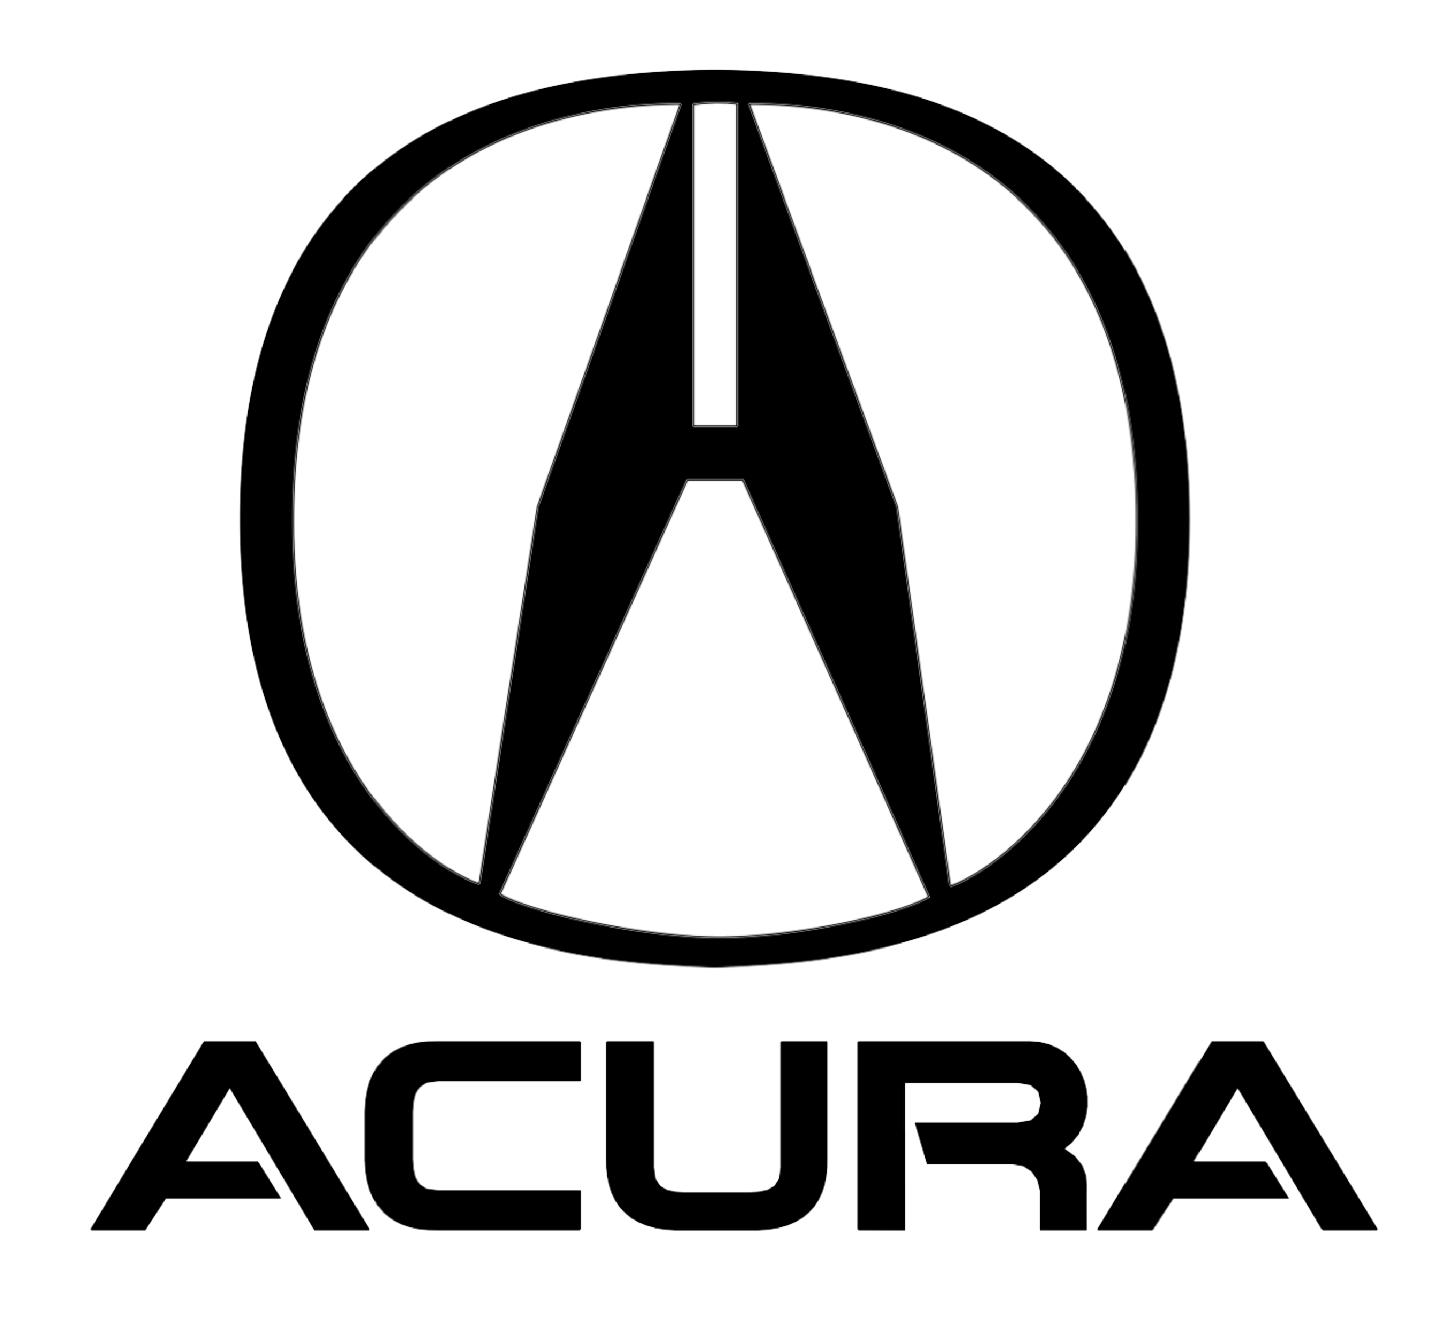 Acura Logo Acura Car Symbol Meaning And History Car Brand Names